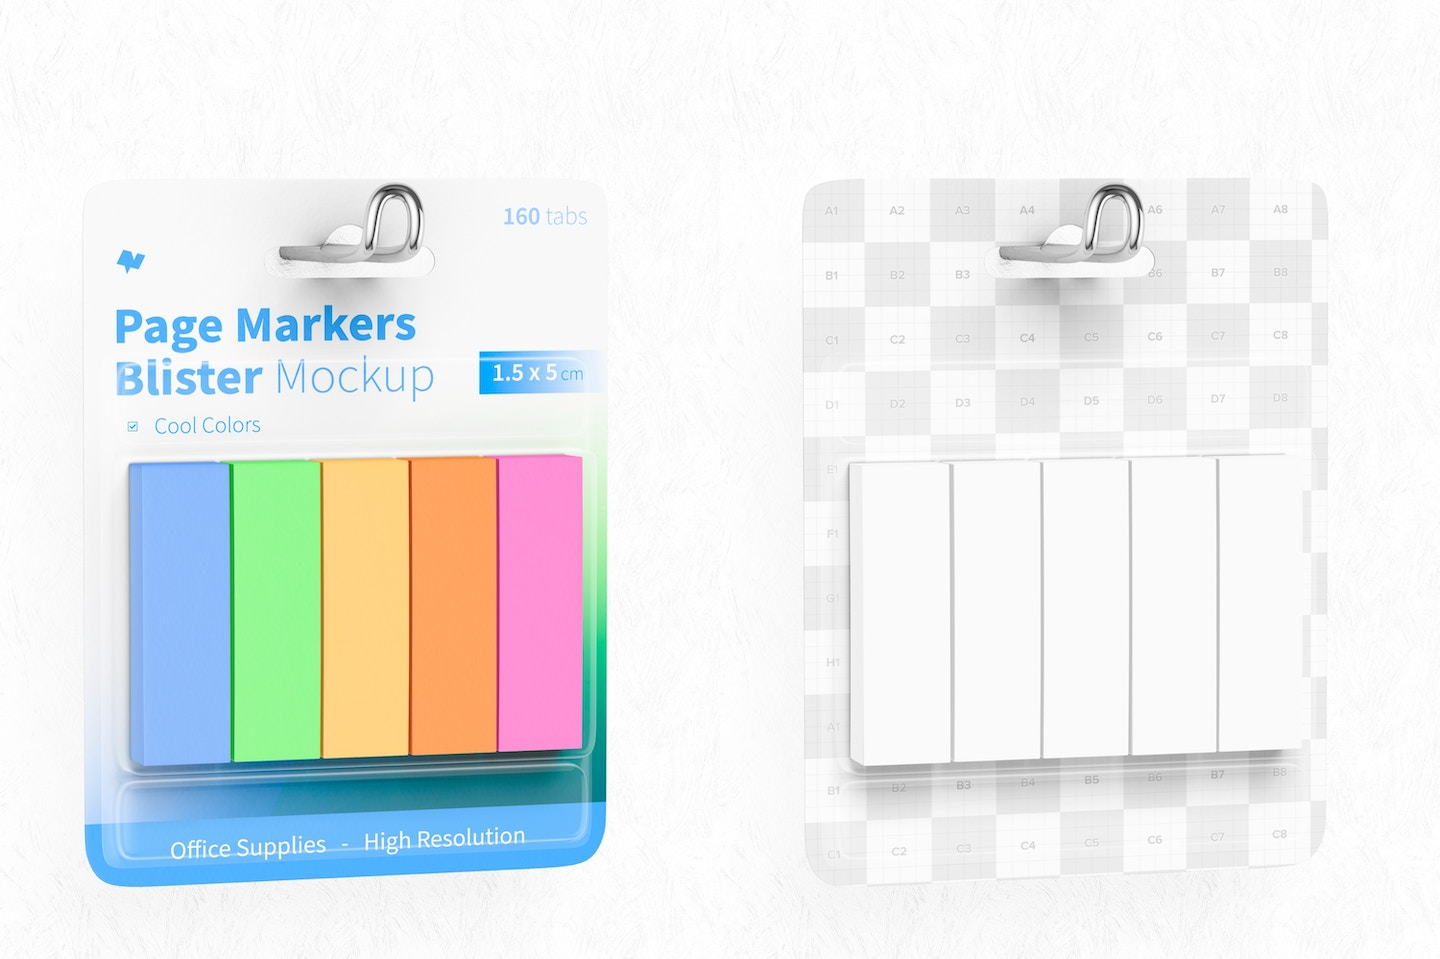 Page Markers Blister Mockup, Hanging